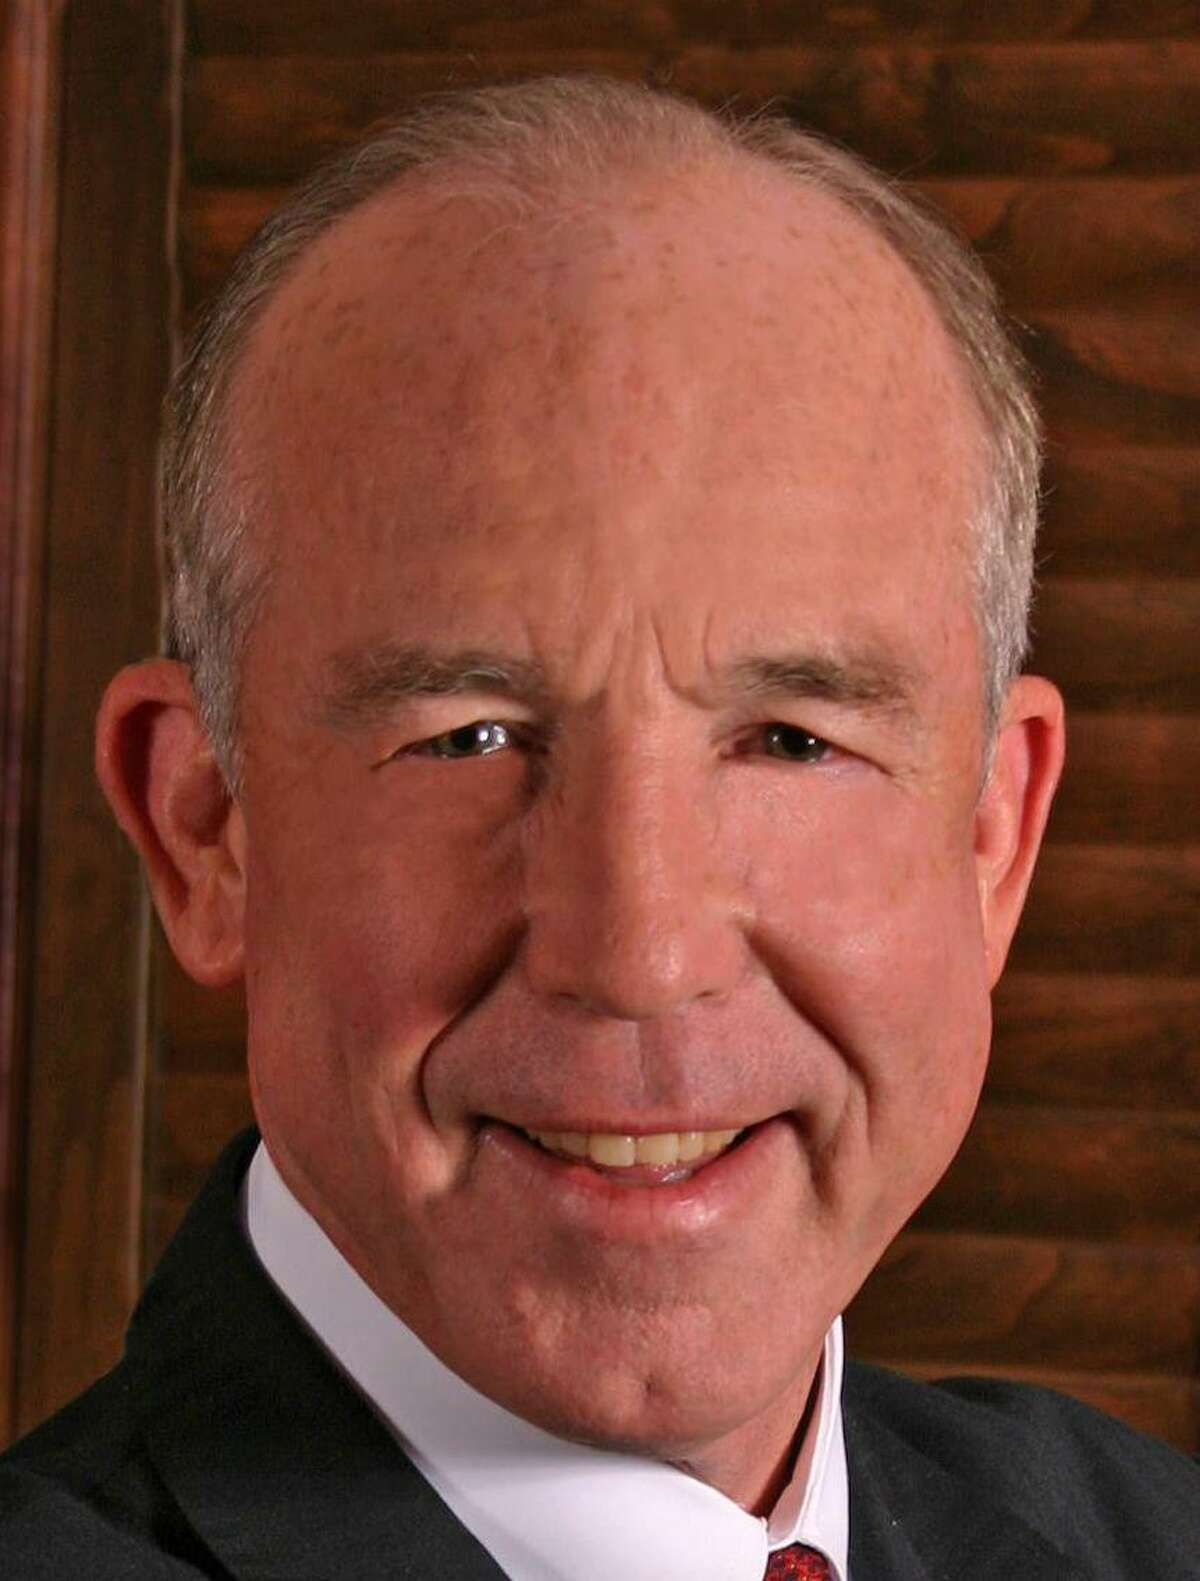 Steven Hotze is president of Campaign for Houston, as well as the Conservative Republicans of Harris County.